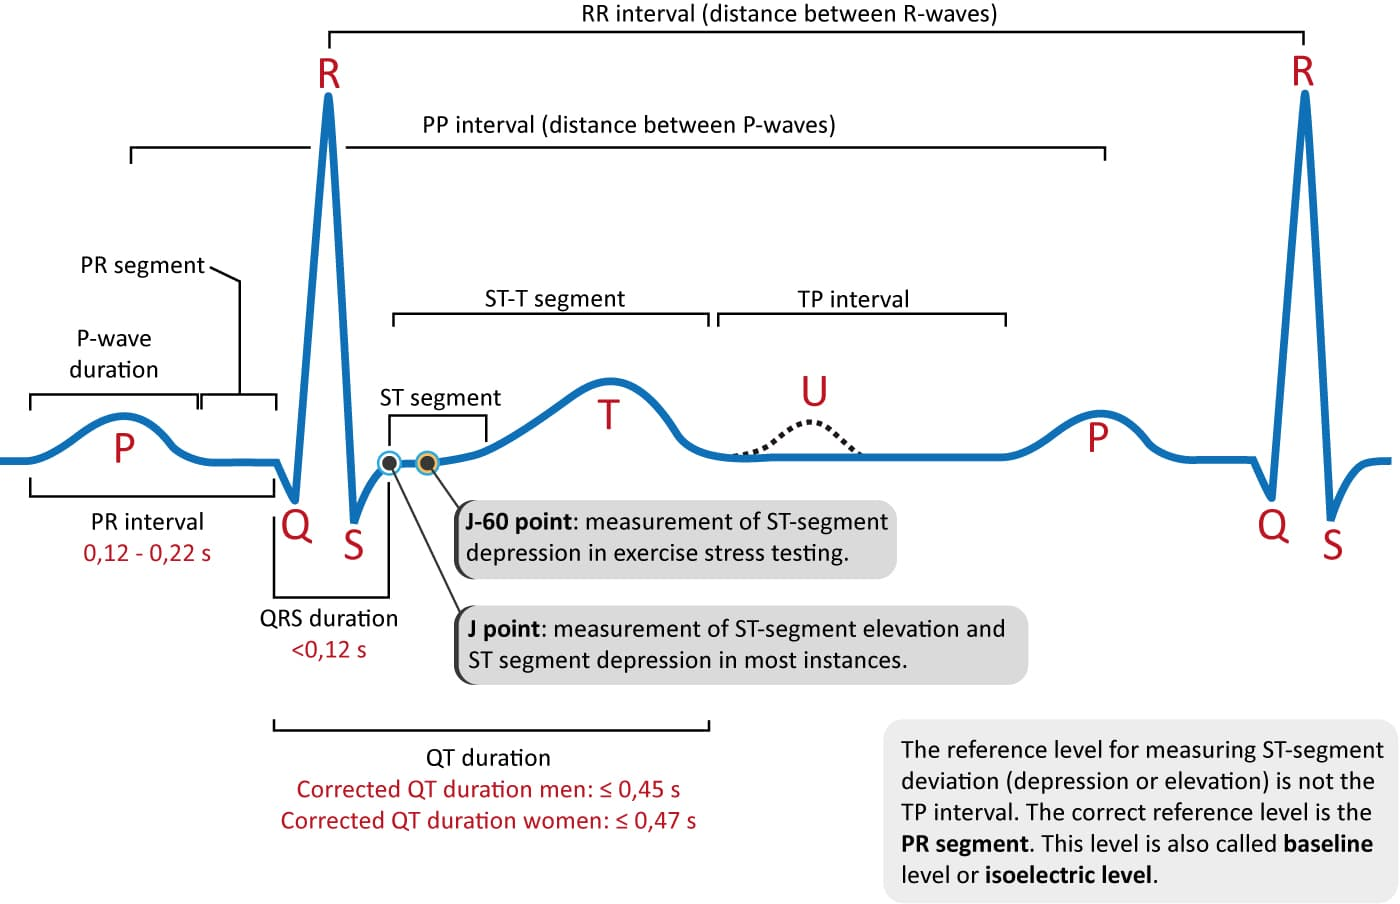 Figure 1. The classical ECG curve with its most common waveforms. Important intervals and points of measurement are depicted. ECG interpretation requires knowledge of these waves and intervals.